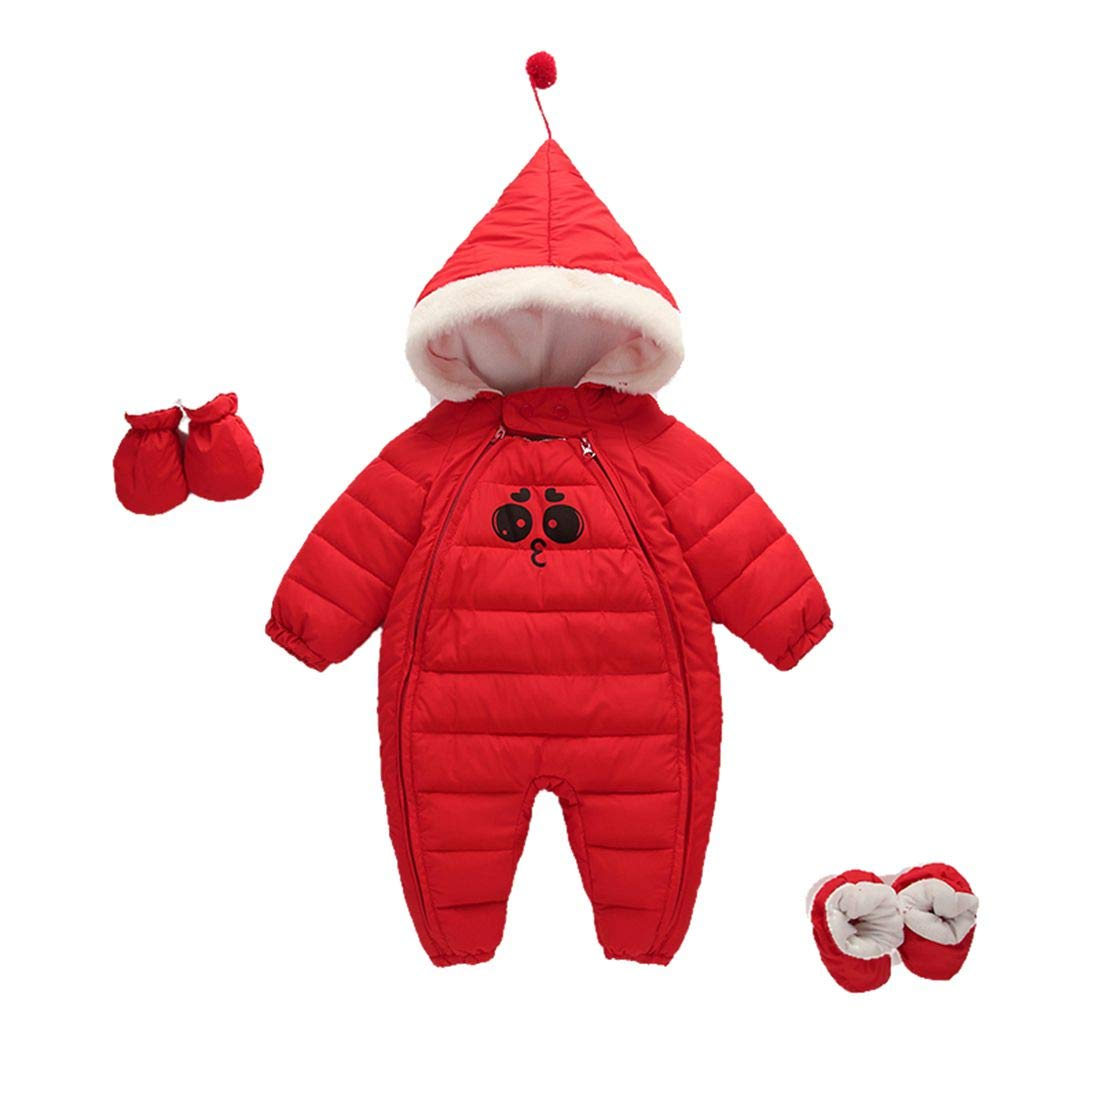 TOURME Newborn Infant Baby Girls Boys Winter Warm Jumpsuits Snowsuit Outerwear